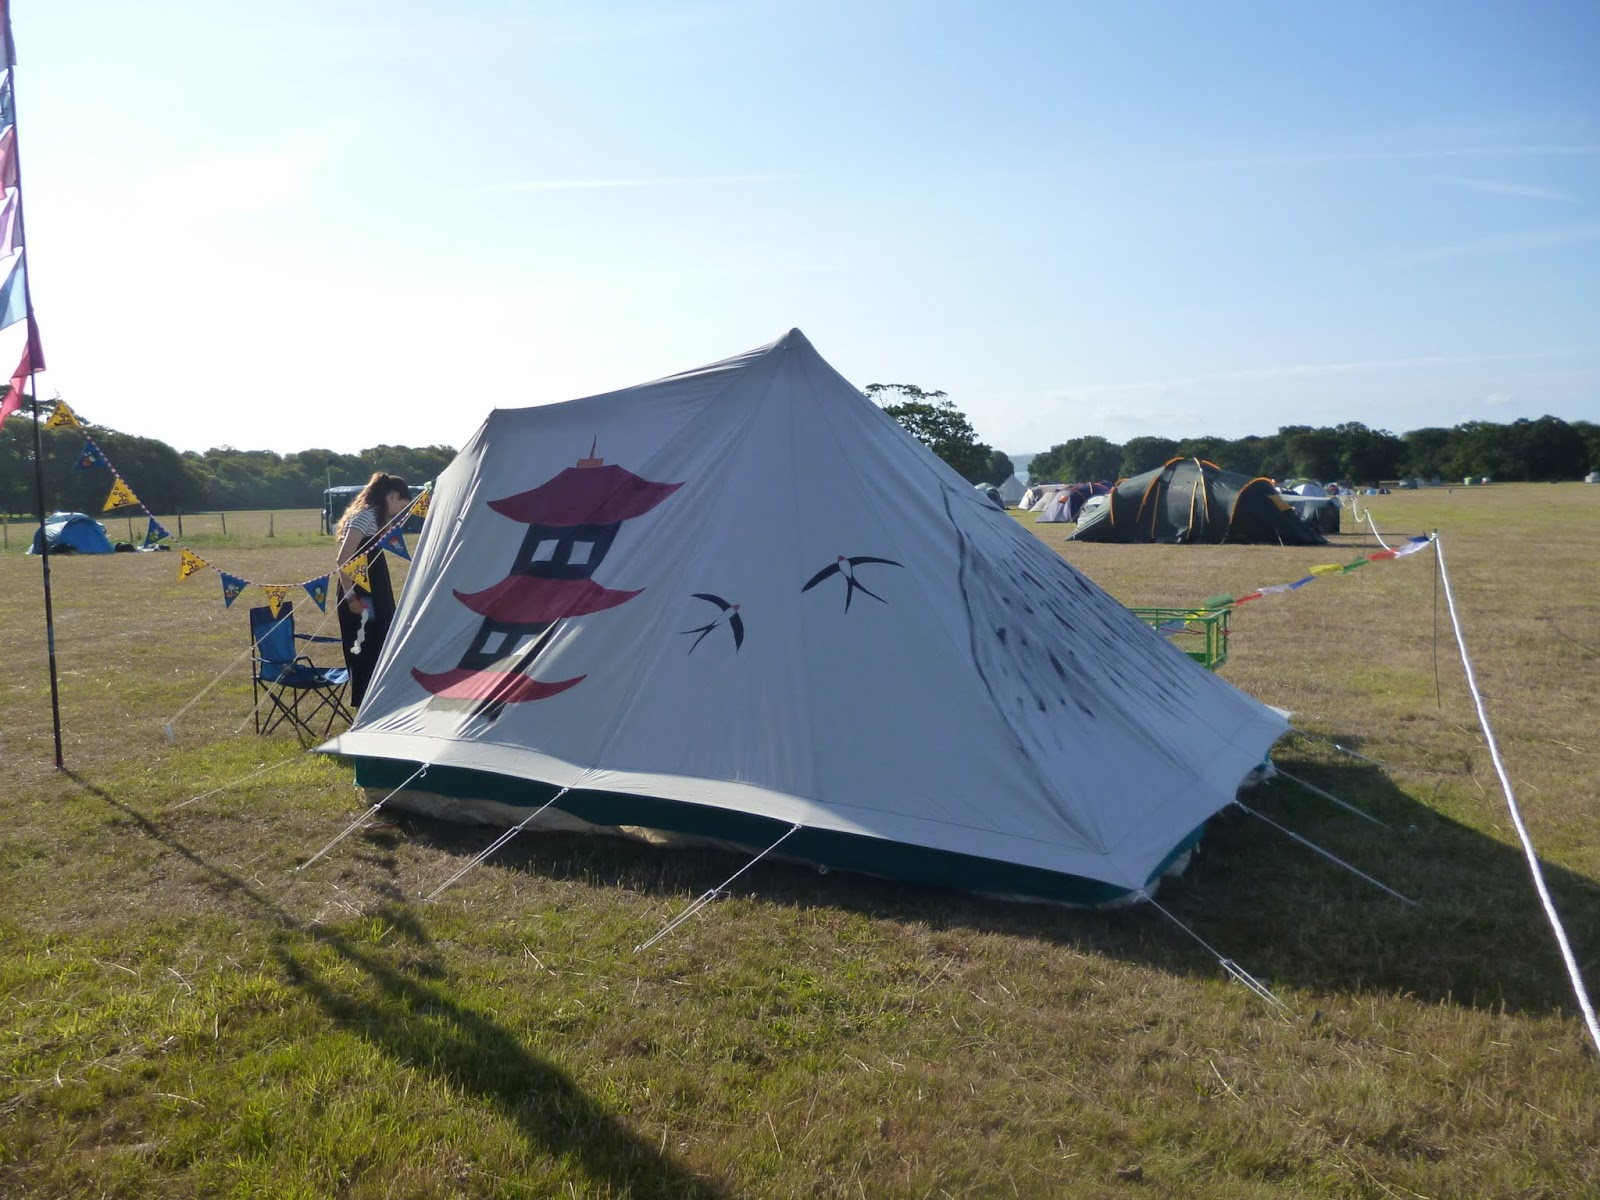 painting a cabanon 4 man pyramid tent with fabric paints & Painting a tent - Take two